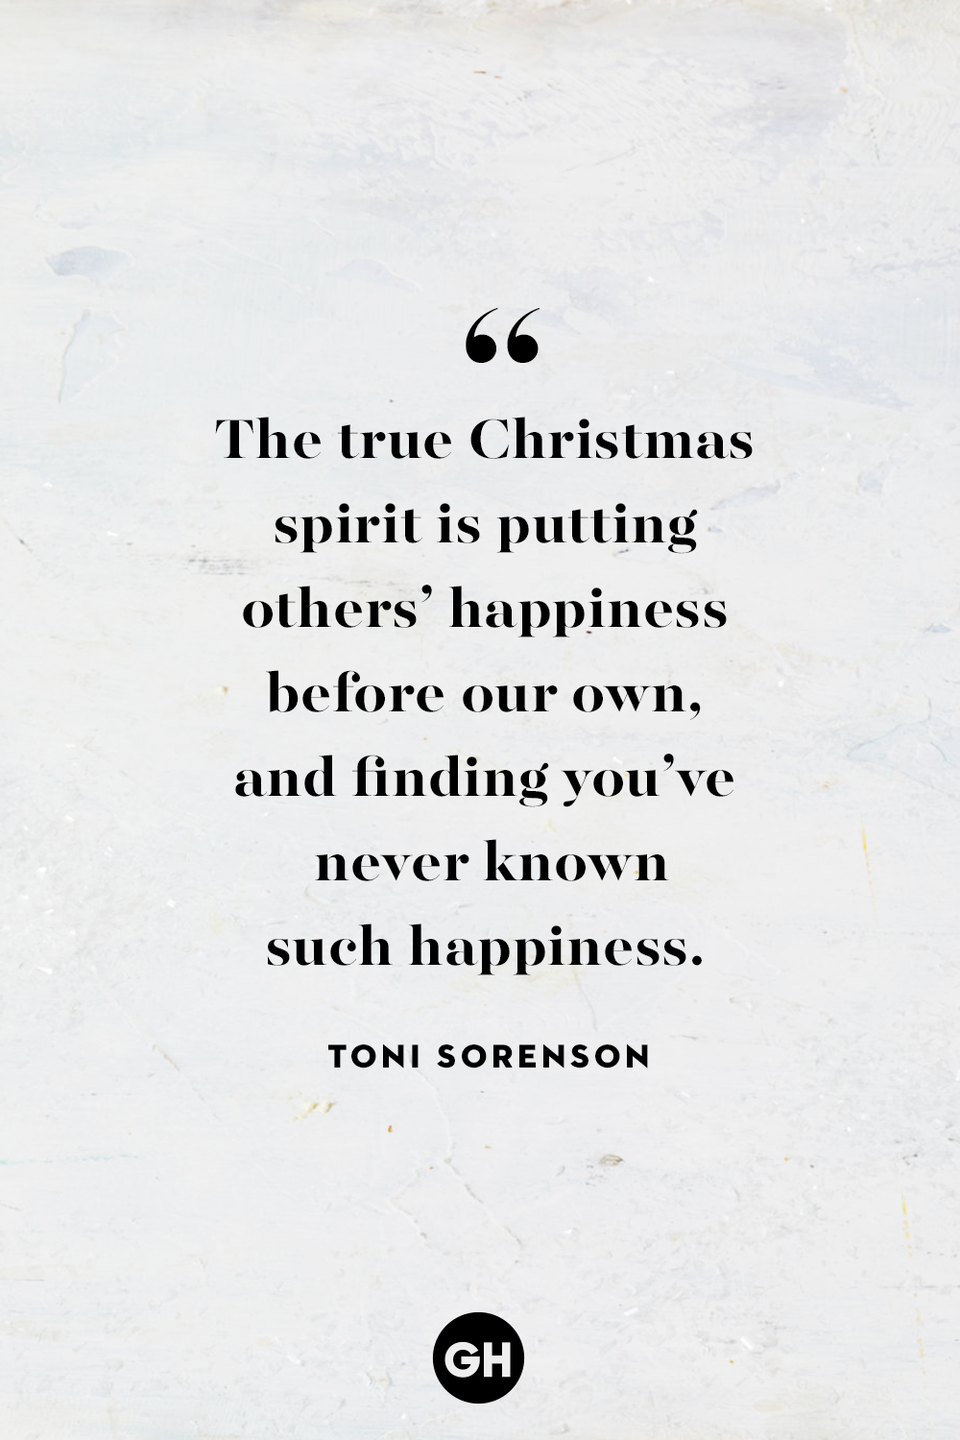 <p>The true Christmas spirit is putting others' happiness before our own, and finding you've never known such happiness. </p>